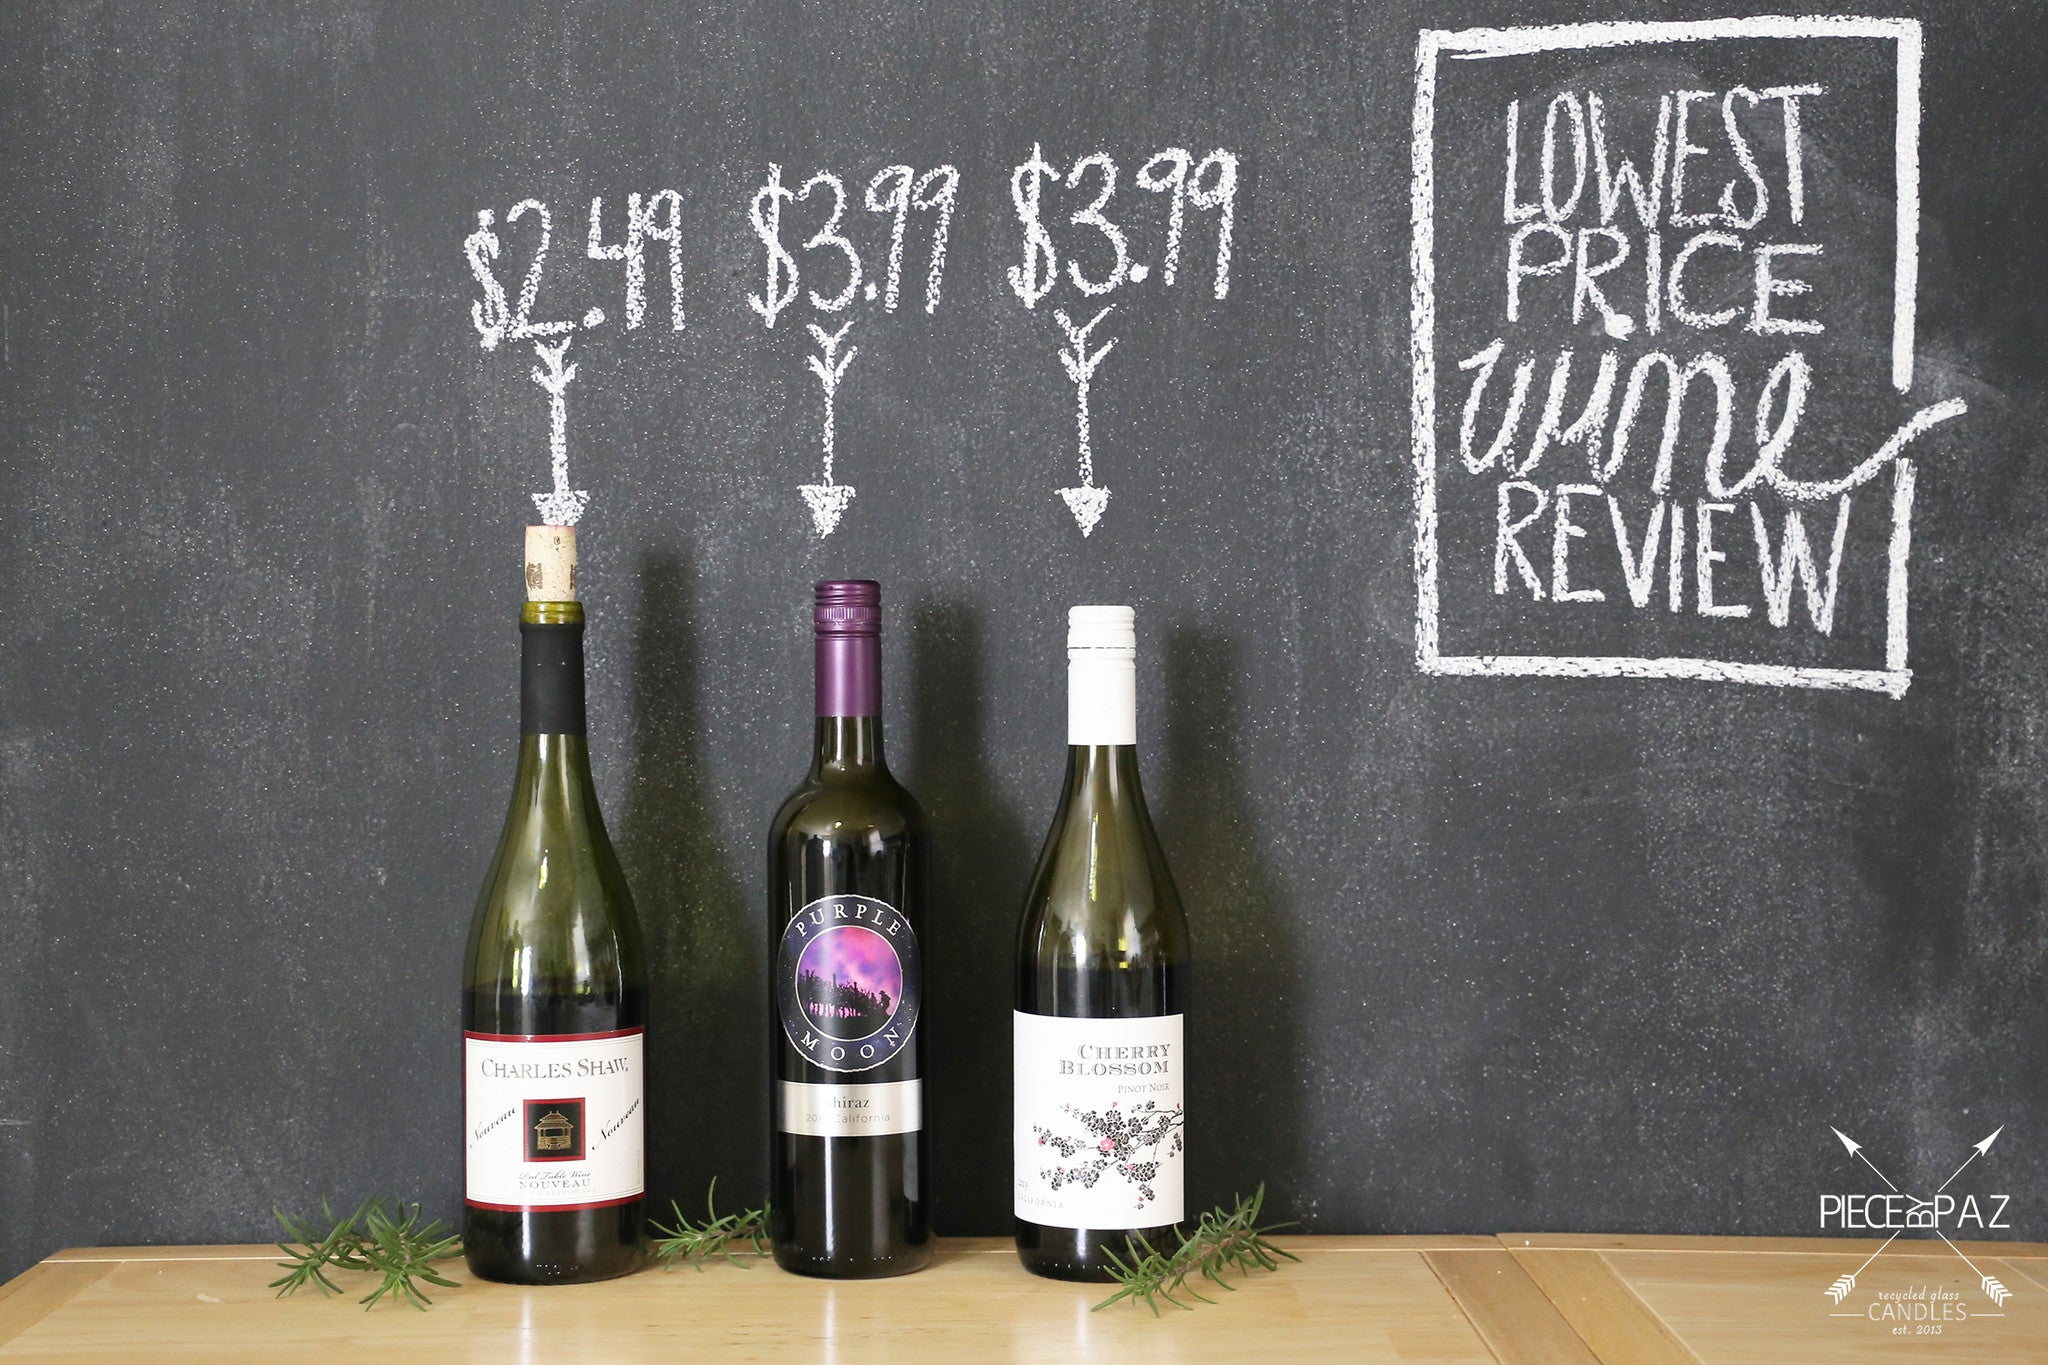 TRADER JOE'S 3 LOWEST PRICED RED WINES REVIEW